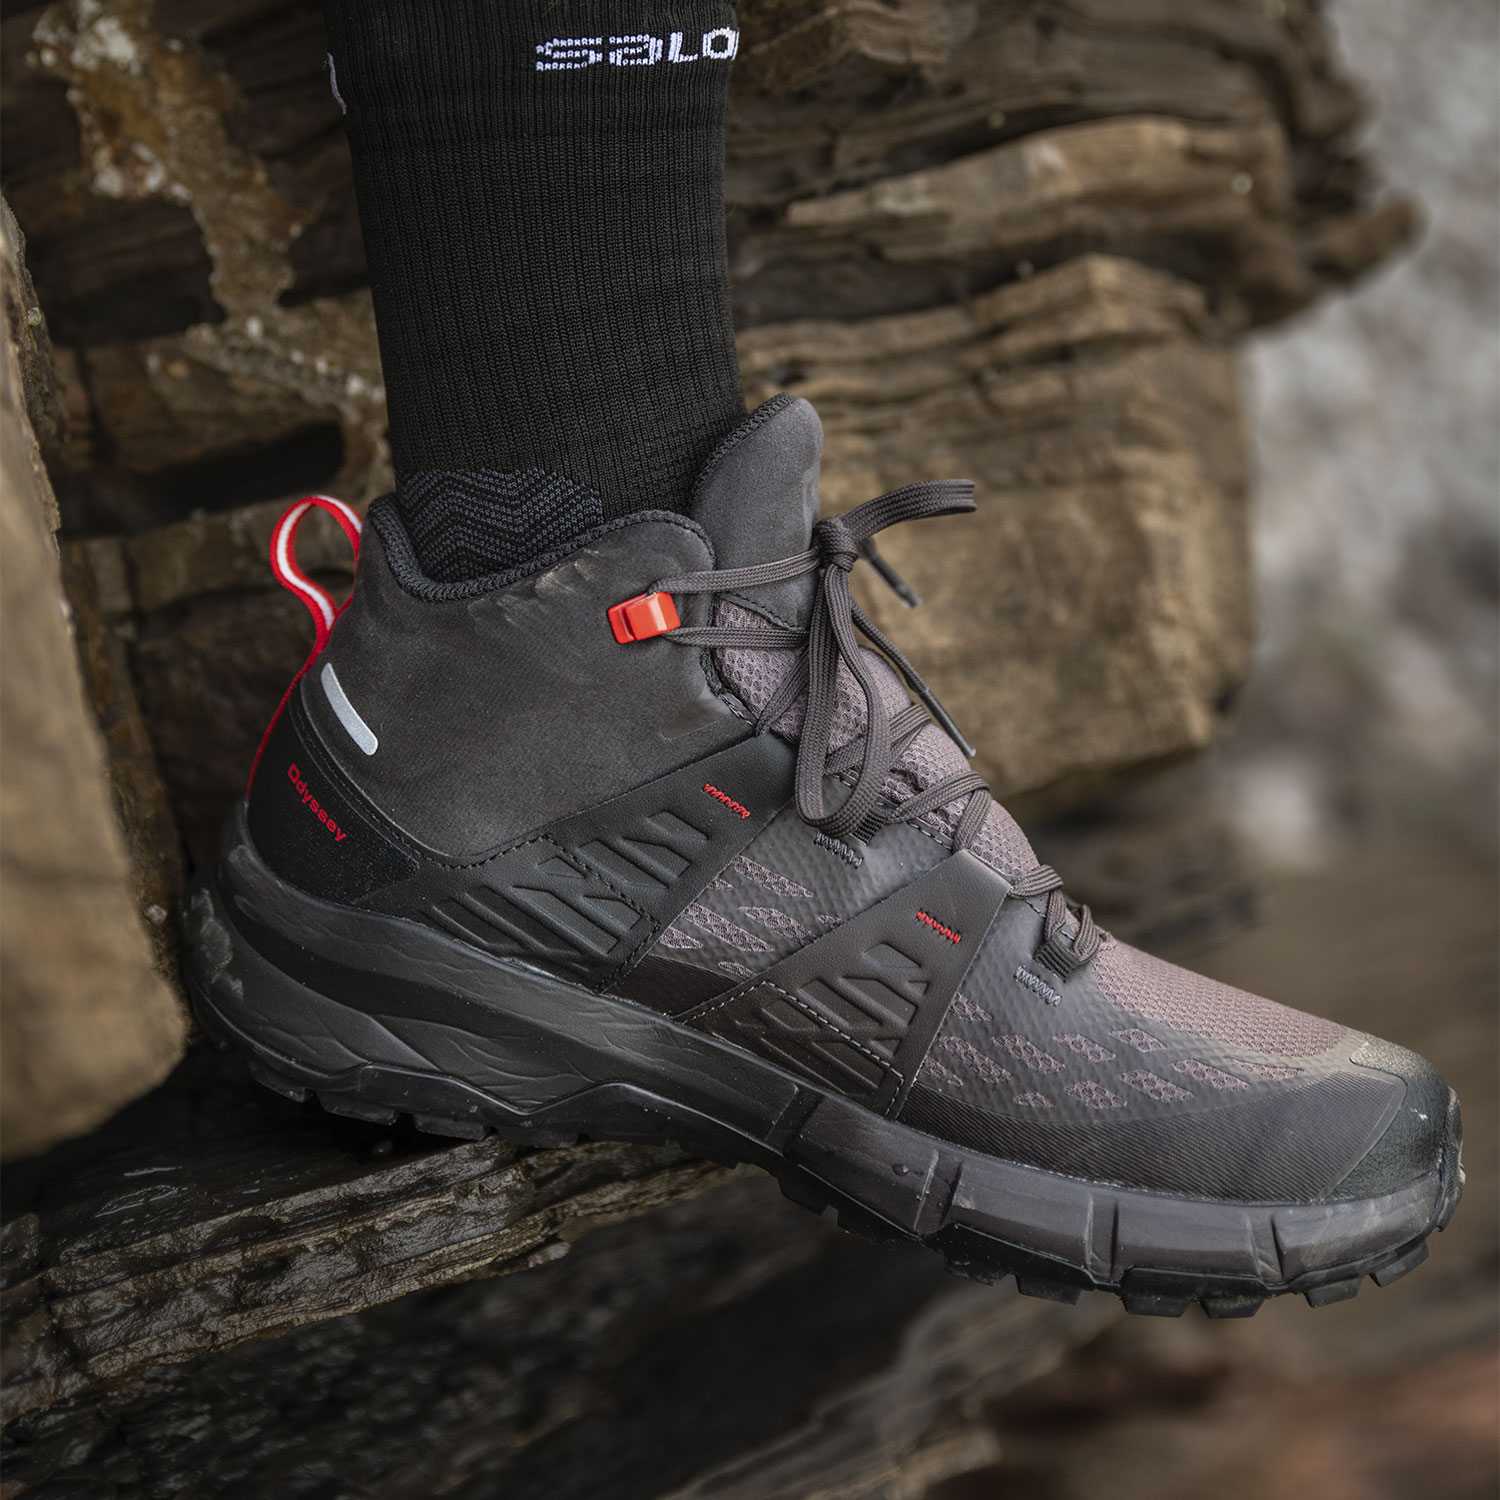 Salomon Odyssey Mid GTX - Black/Shale/High Risk Red